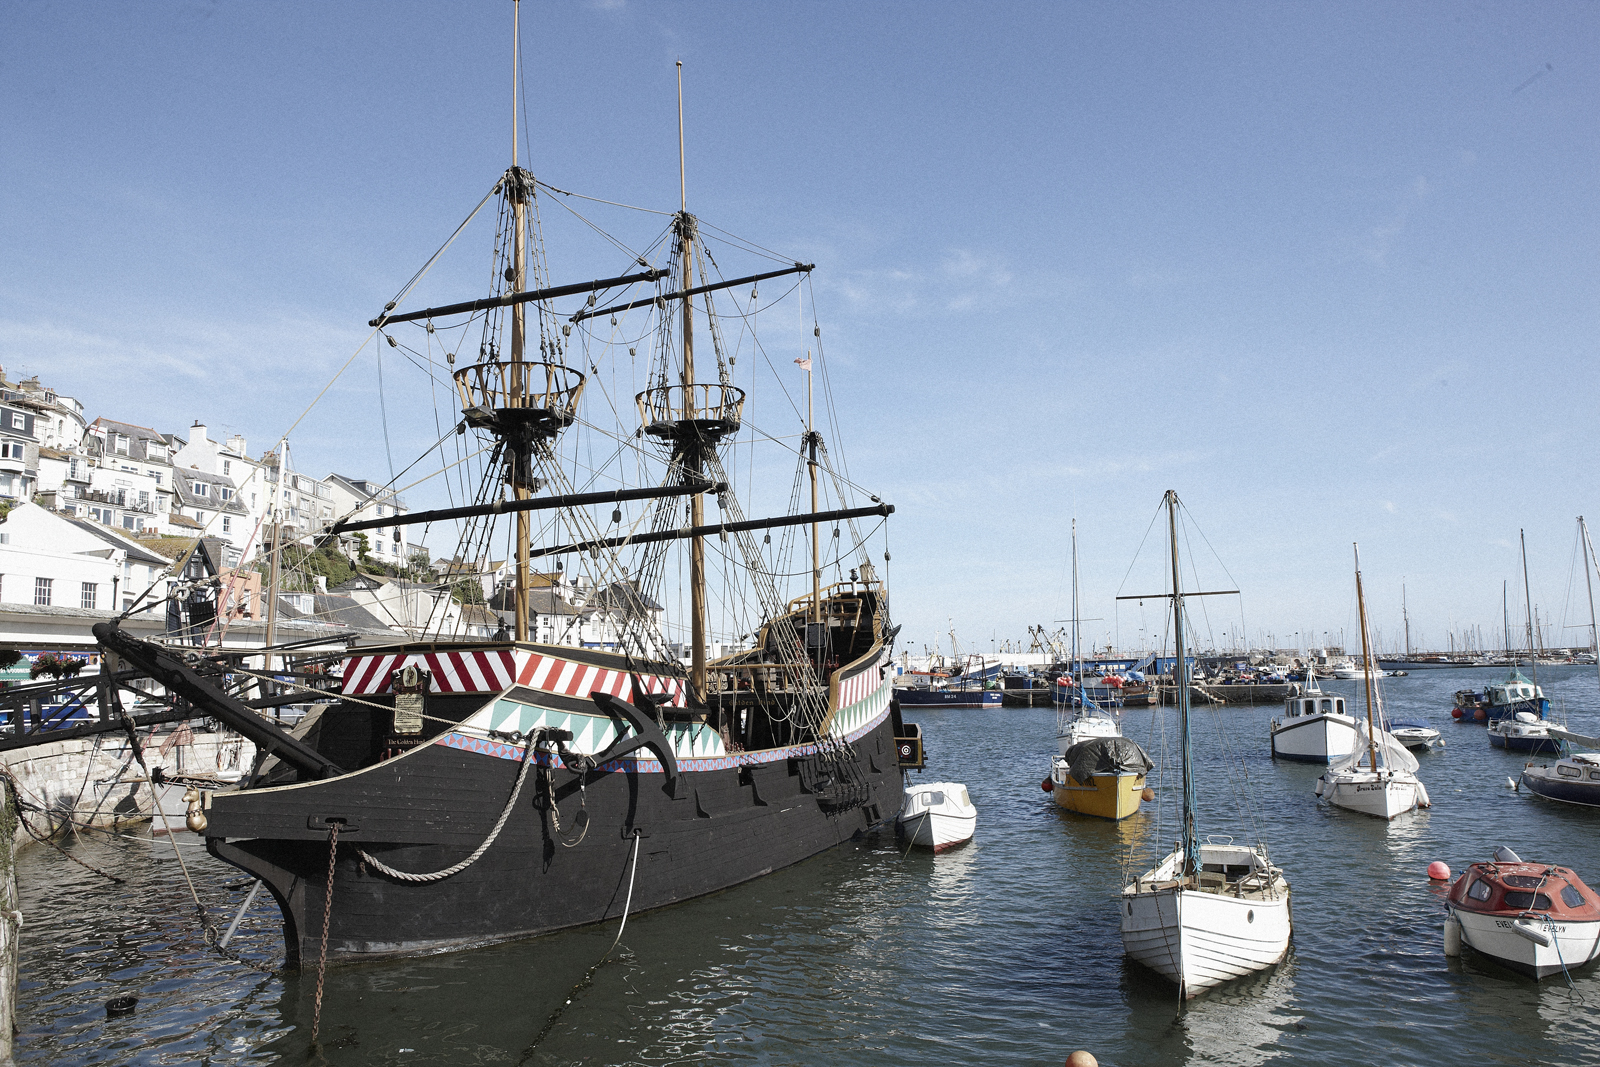 The Golden Hind in Brixham harbour, the main attraction for couples on short breaks in this south Devon port.